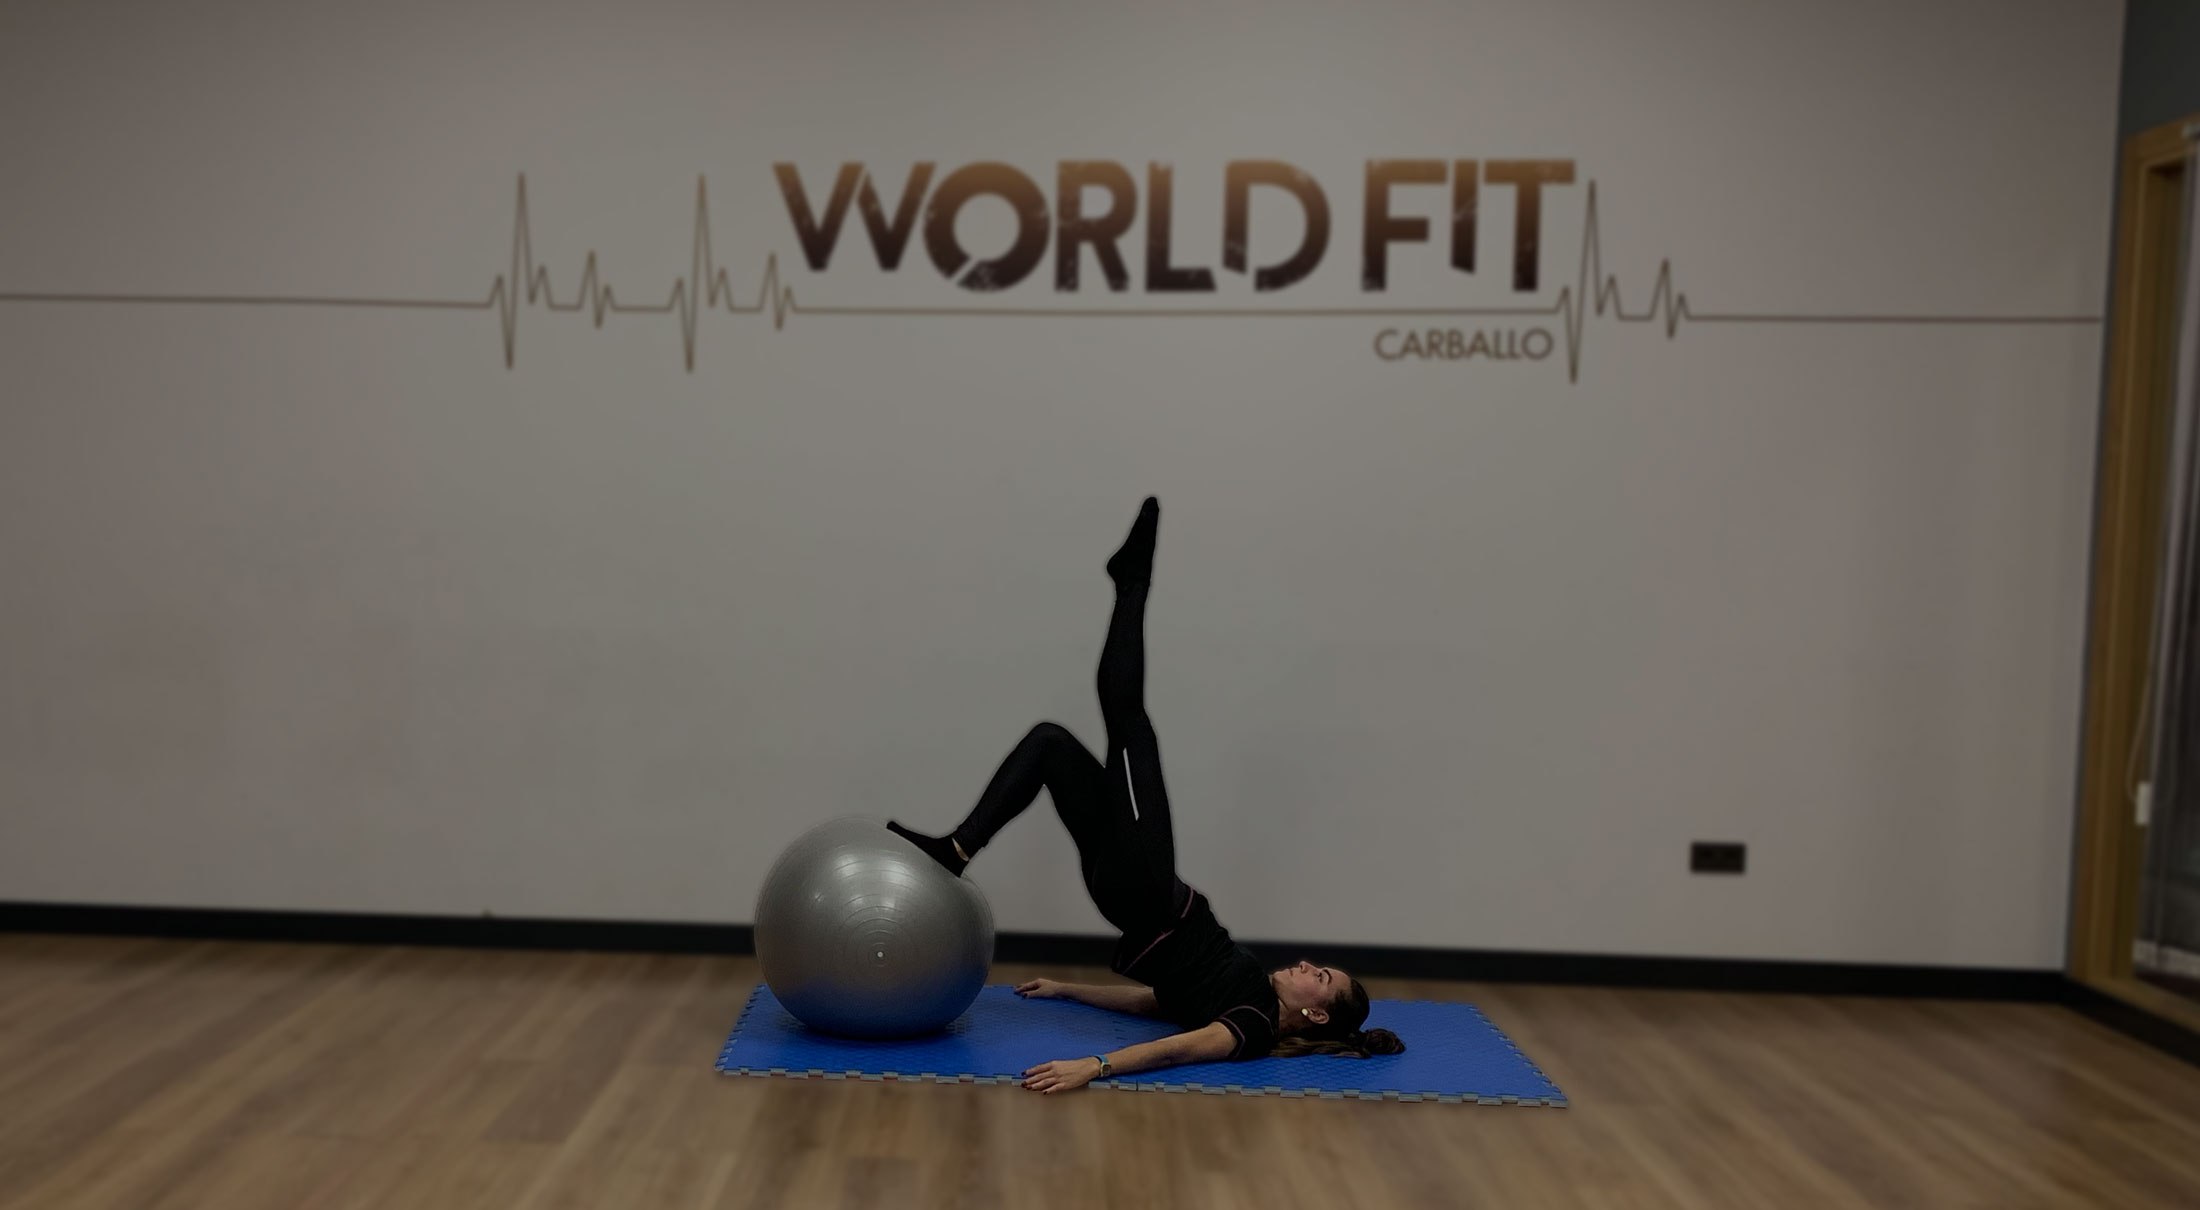 Es el momento de entrenar, ven a World Fit Carballo